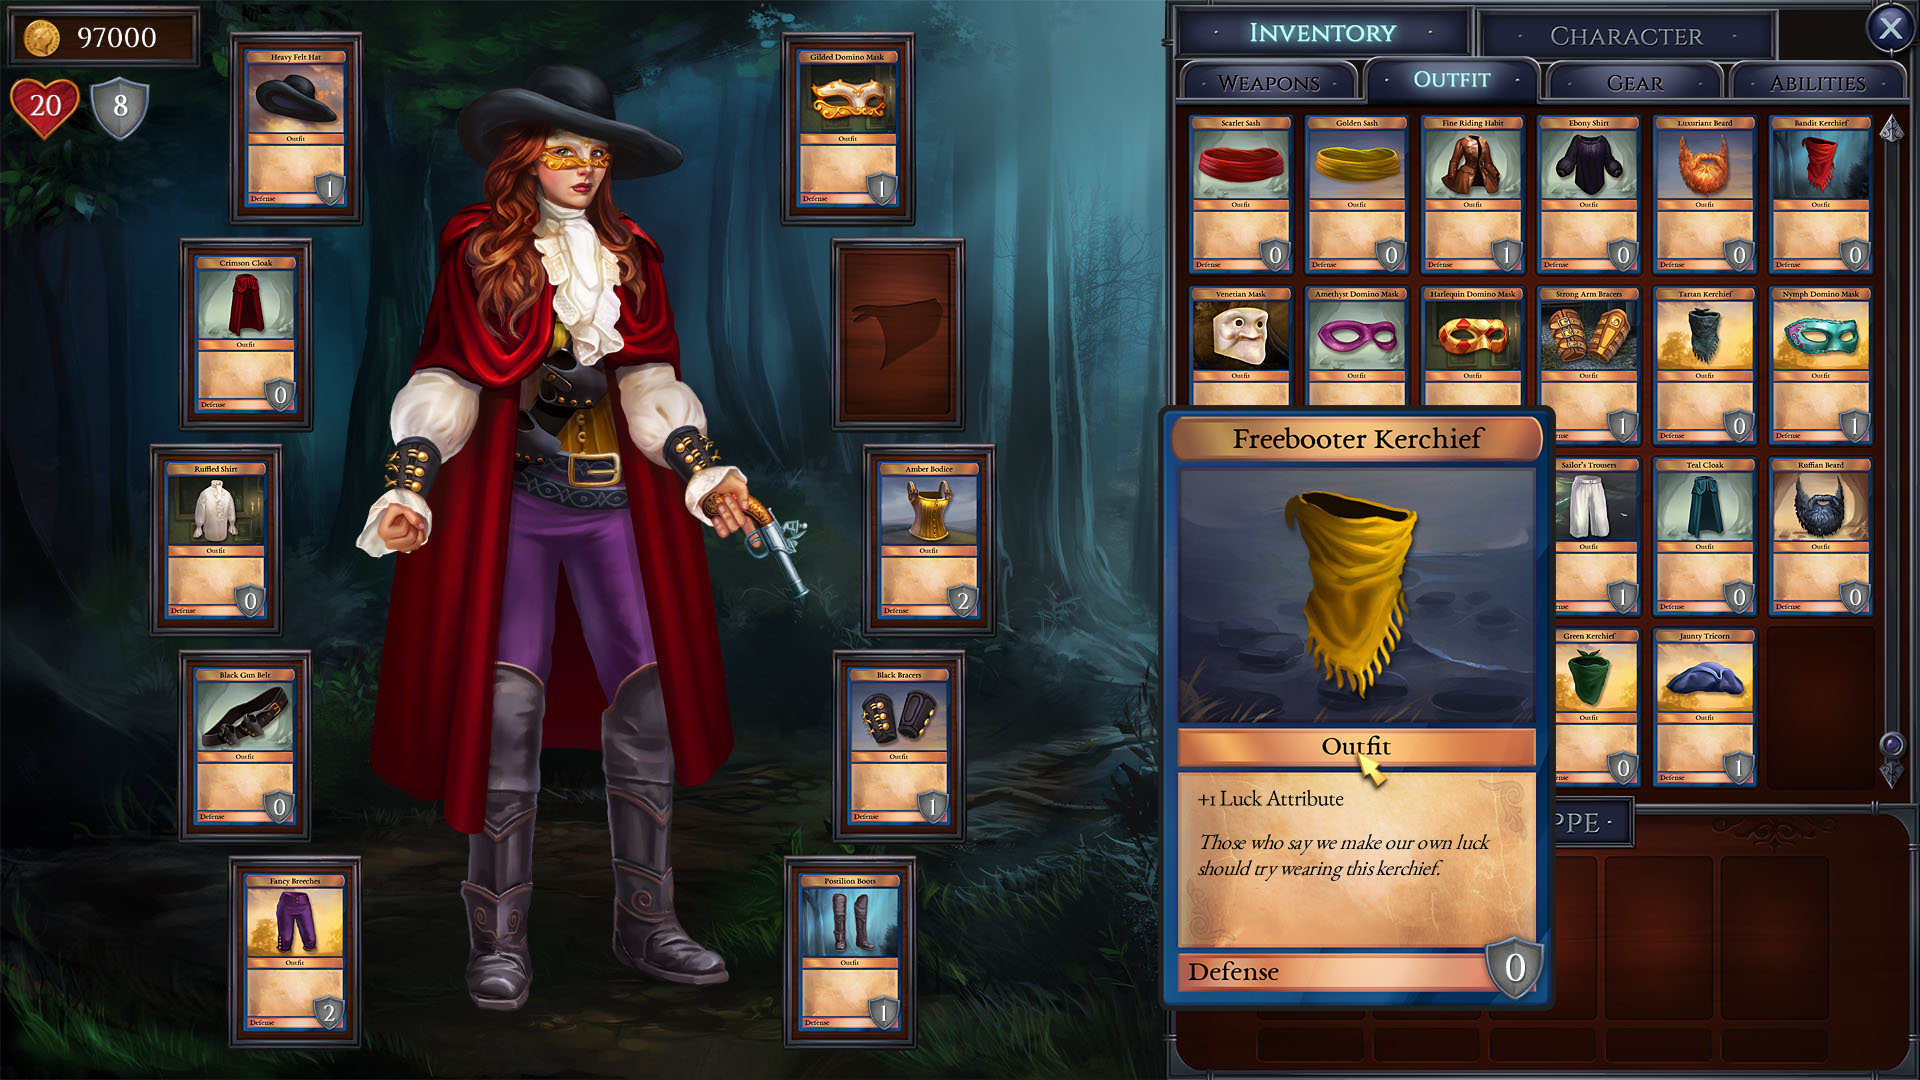 Shadowhand game character customization screenshot